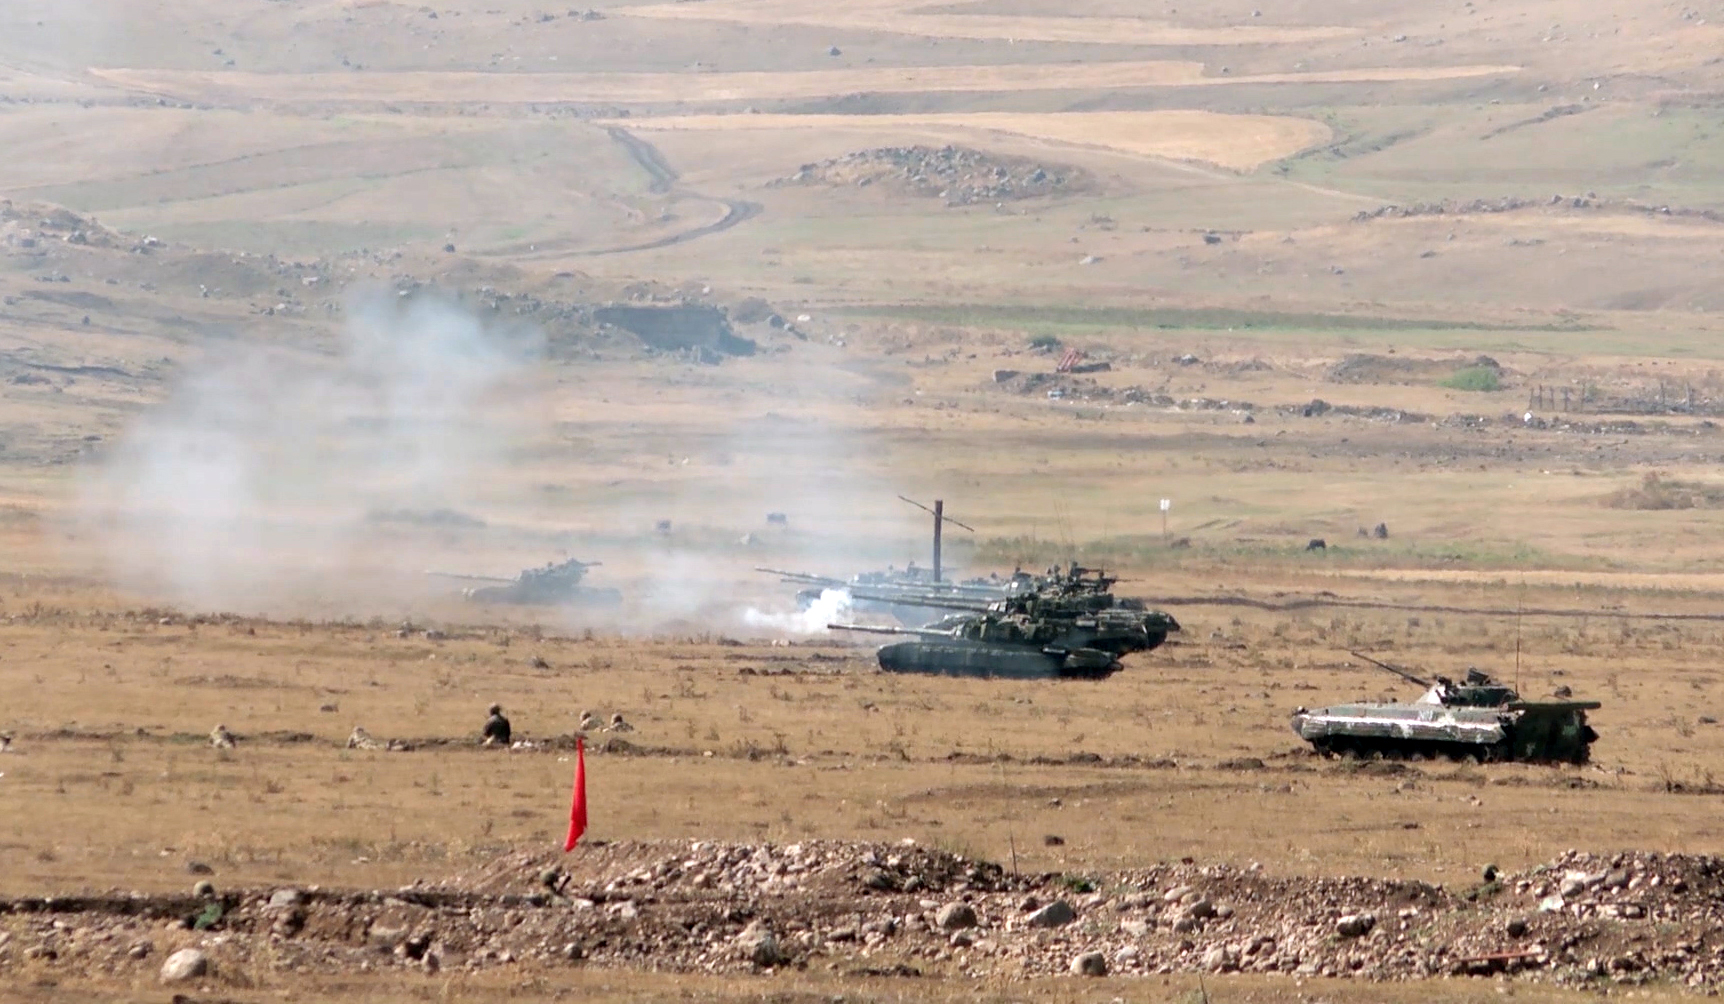 Nagorno-Karabakh fighting grinds on amid more peace talks